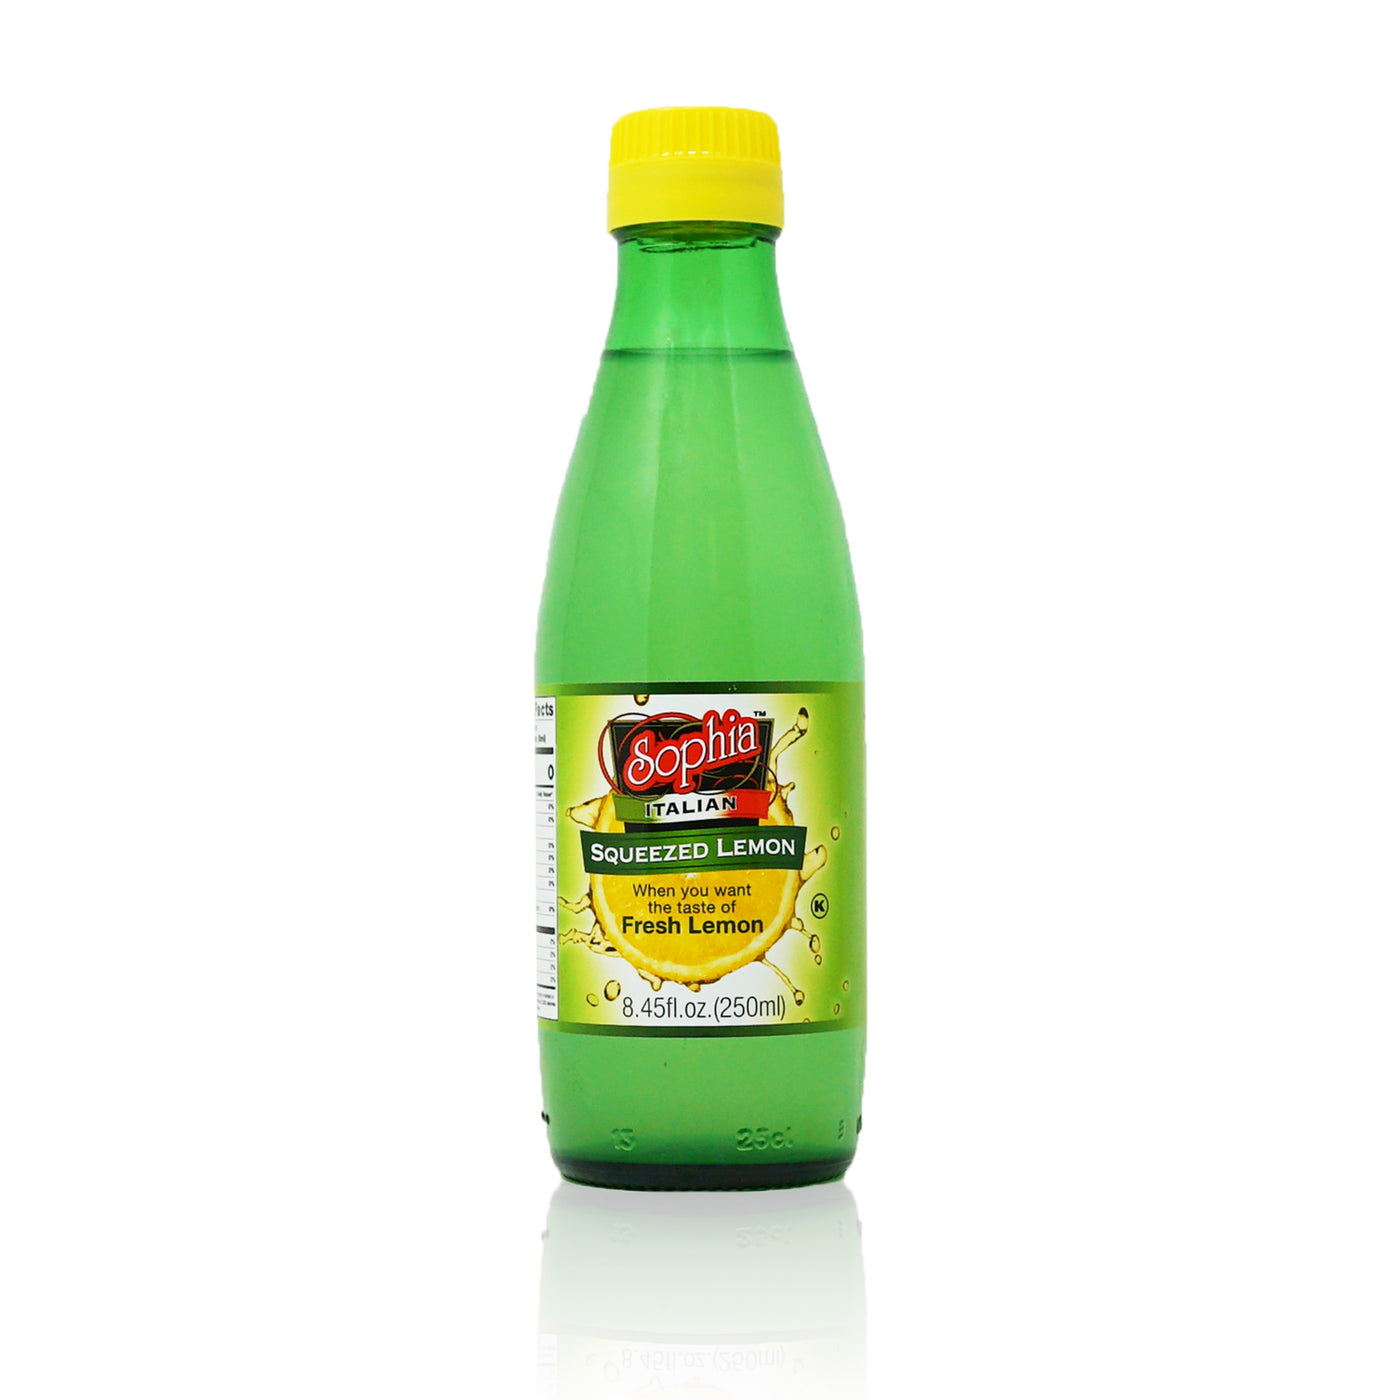 Sophia Lemon Juice Condiment from Sicily